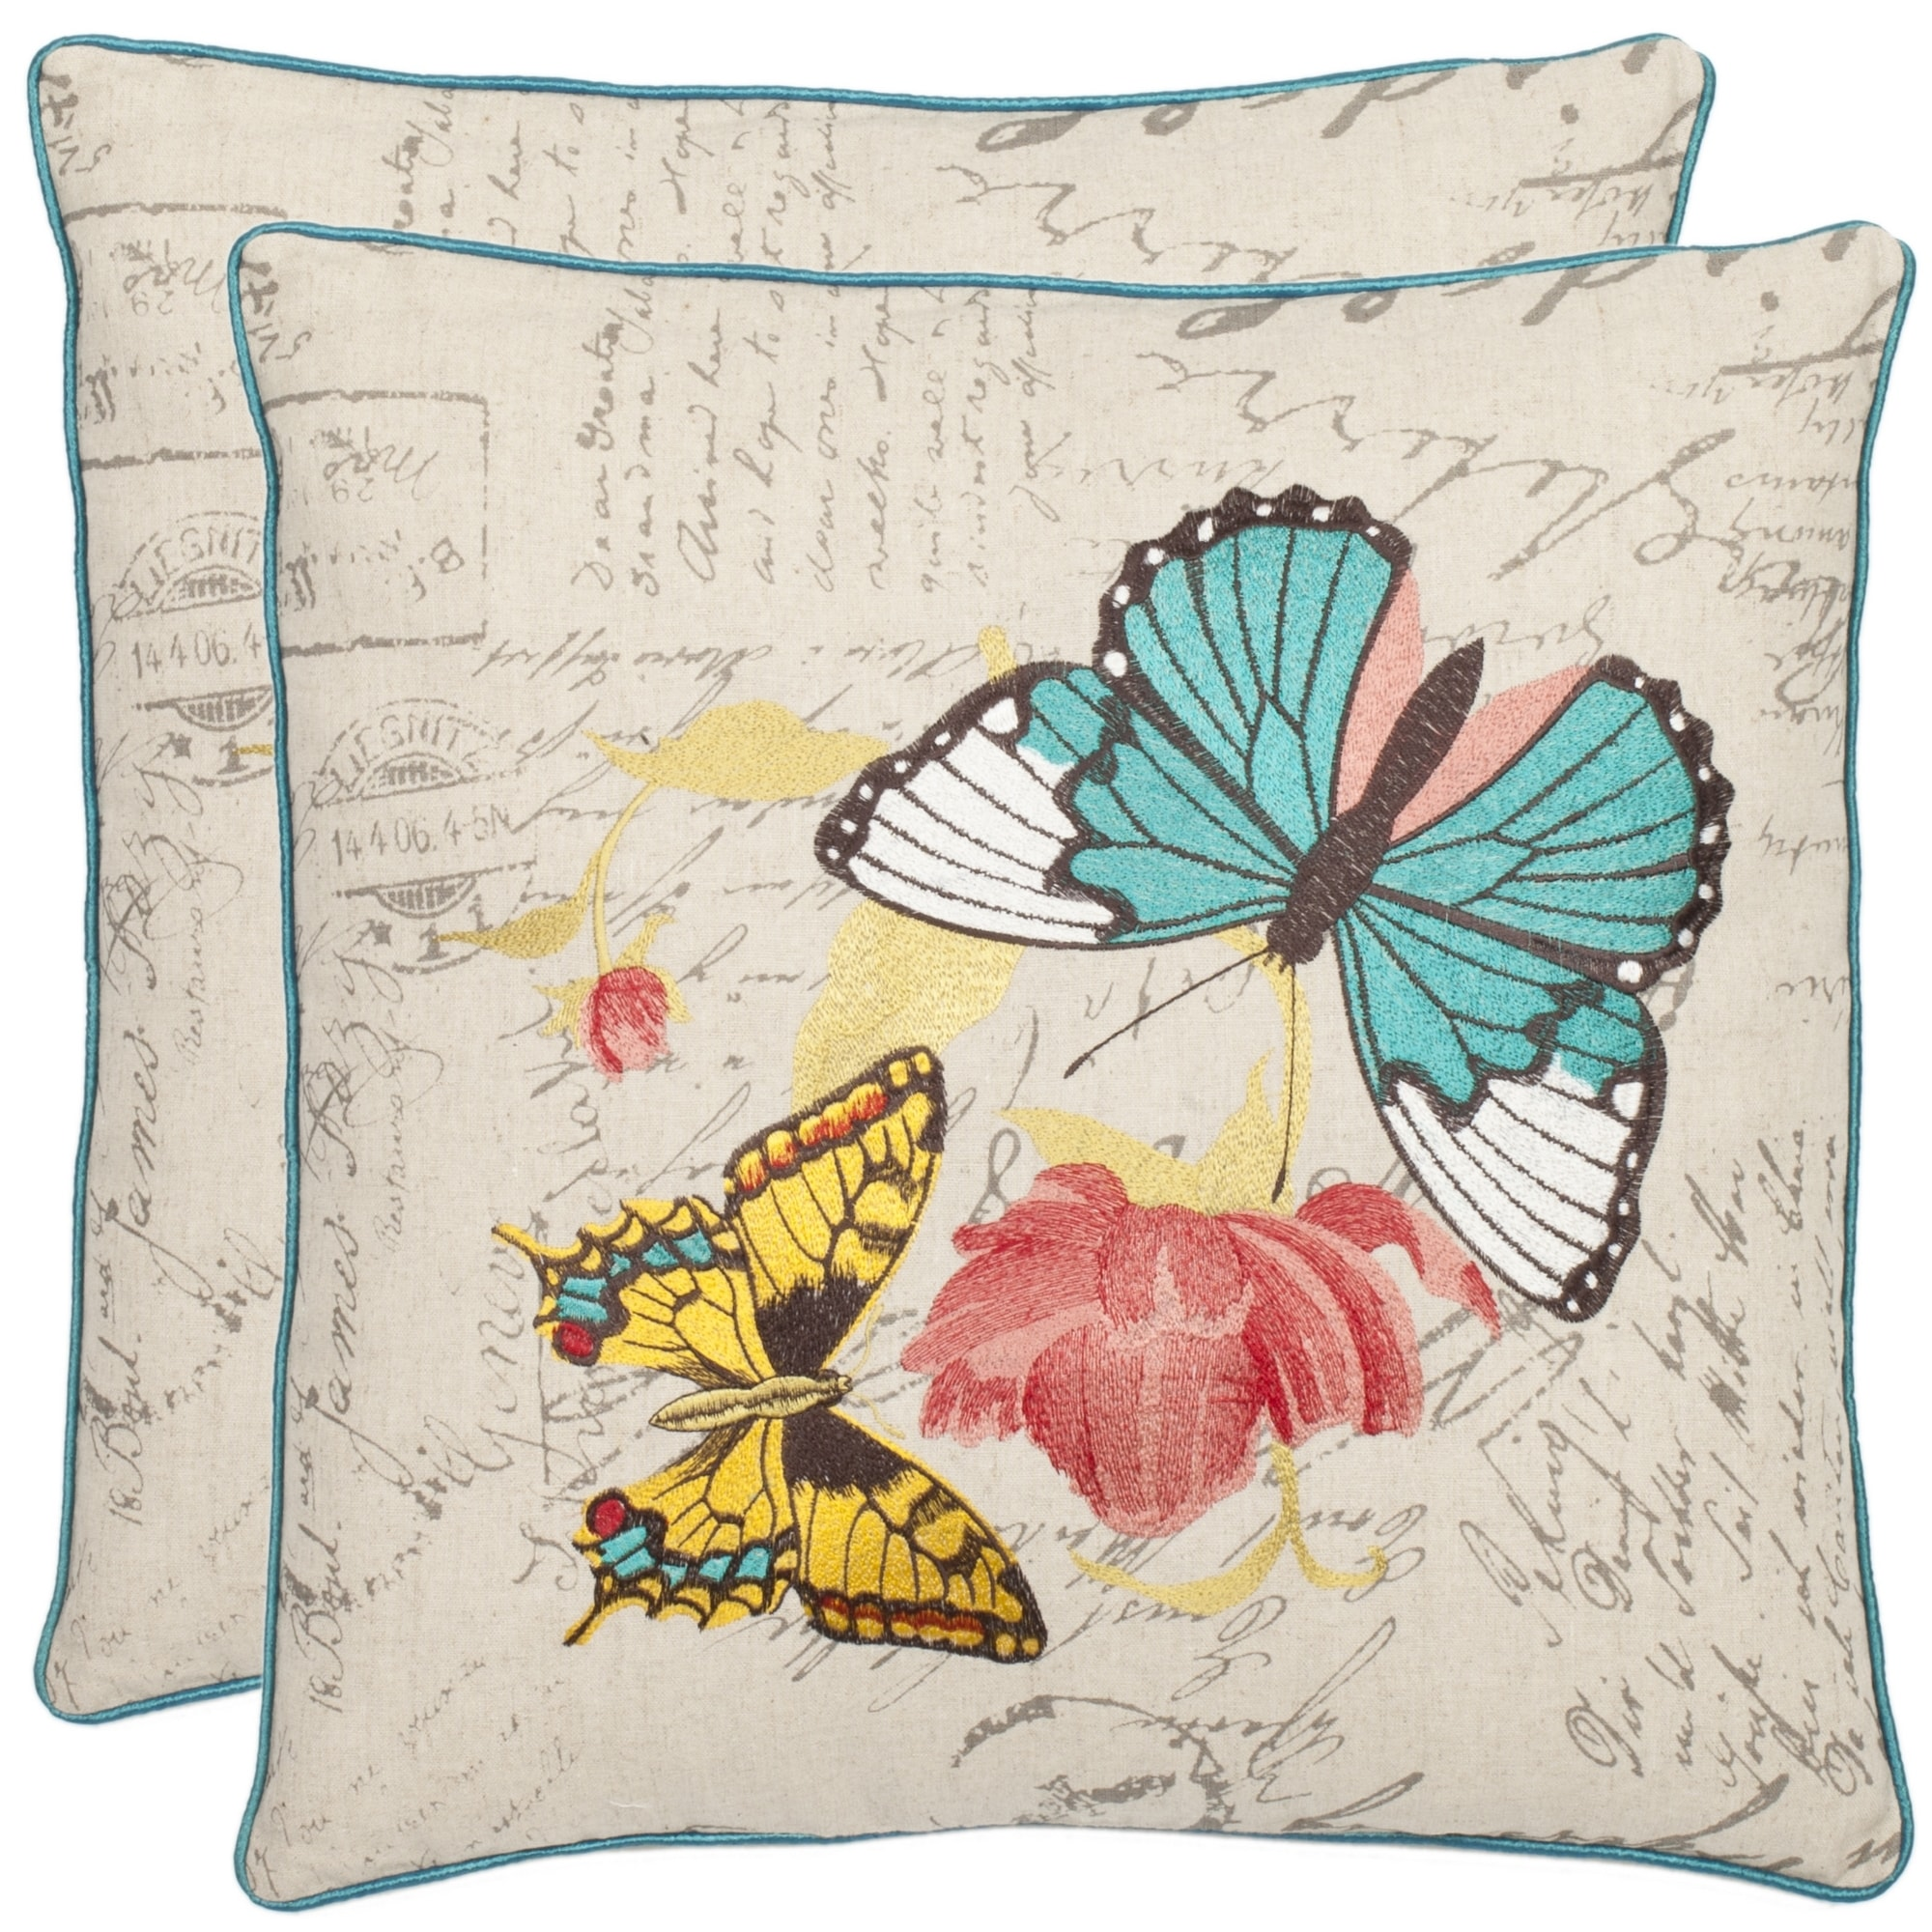 """/'My Sweet 16/""""  Embroidered White Pillows With Butterfly  1 pc Pillow9"""